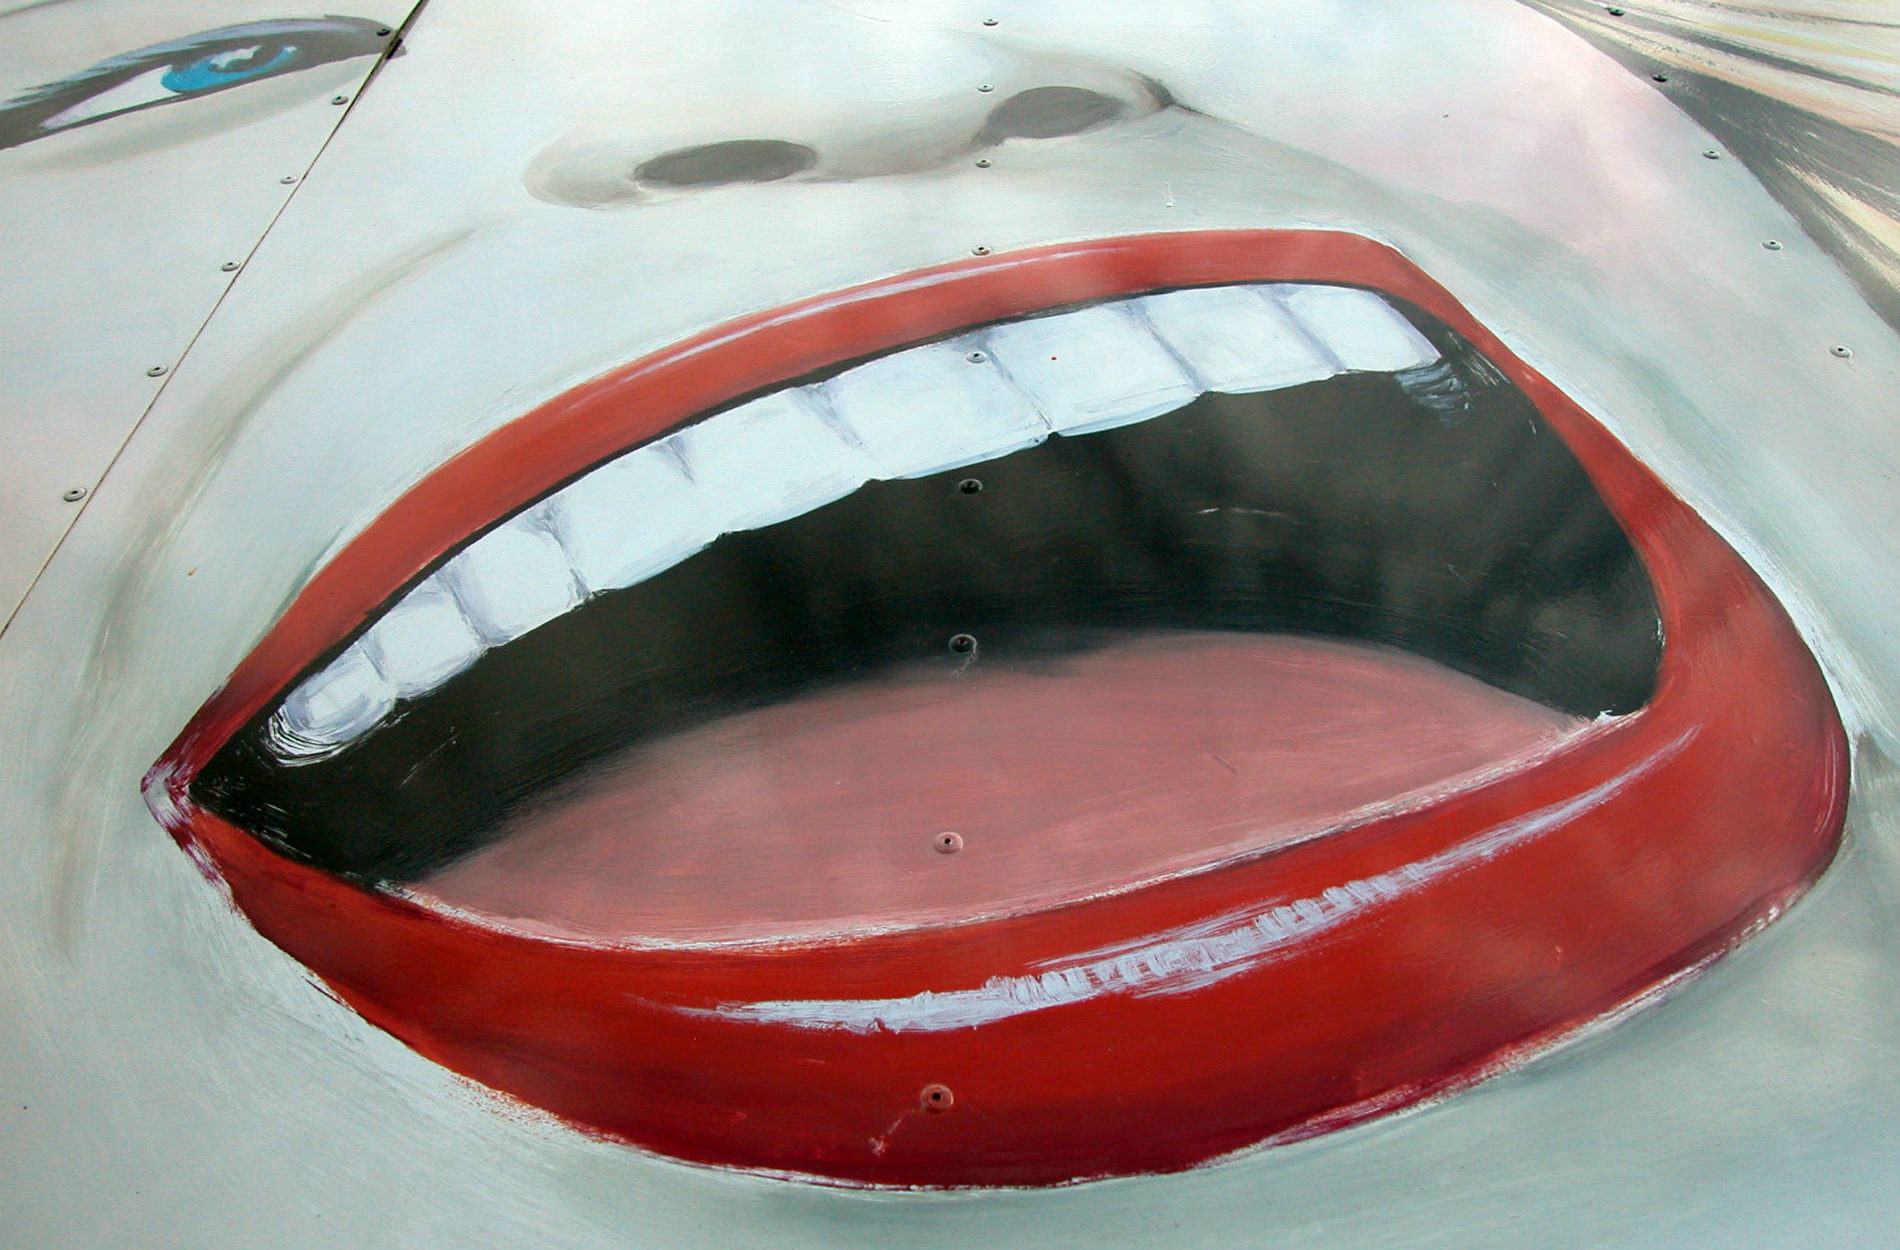 Big mouth Photo by swirlingthoughts